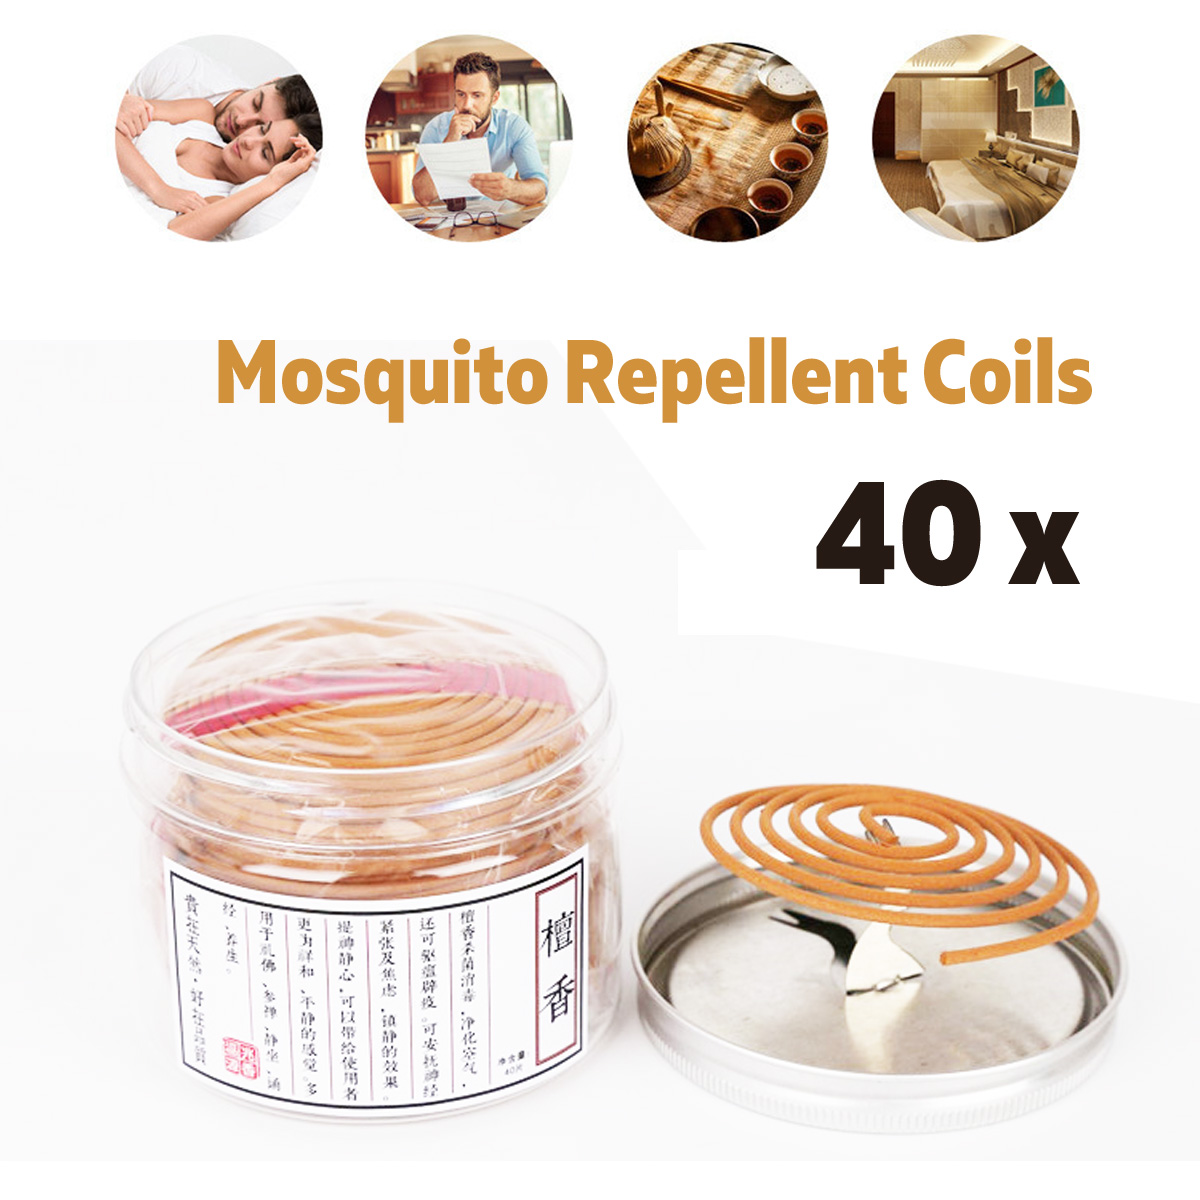 40Pcs Mosquito Dispeller Coils Anti Midge Strider Bug Repellant Home Camping Outdoor with Holder